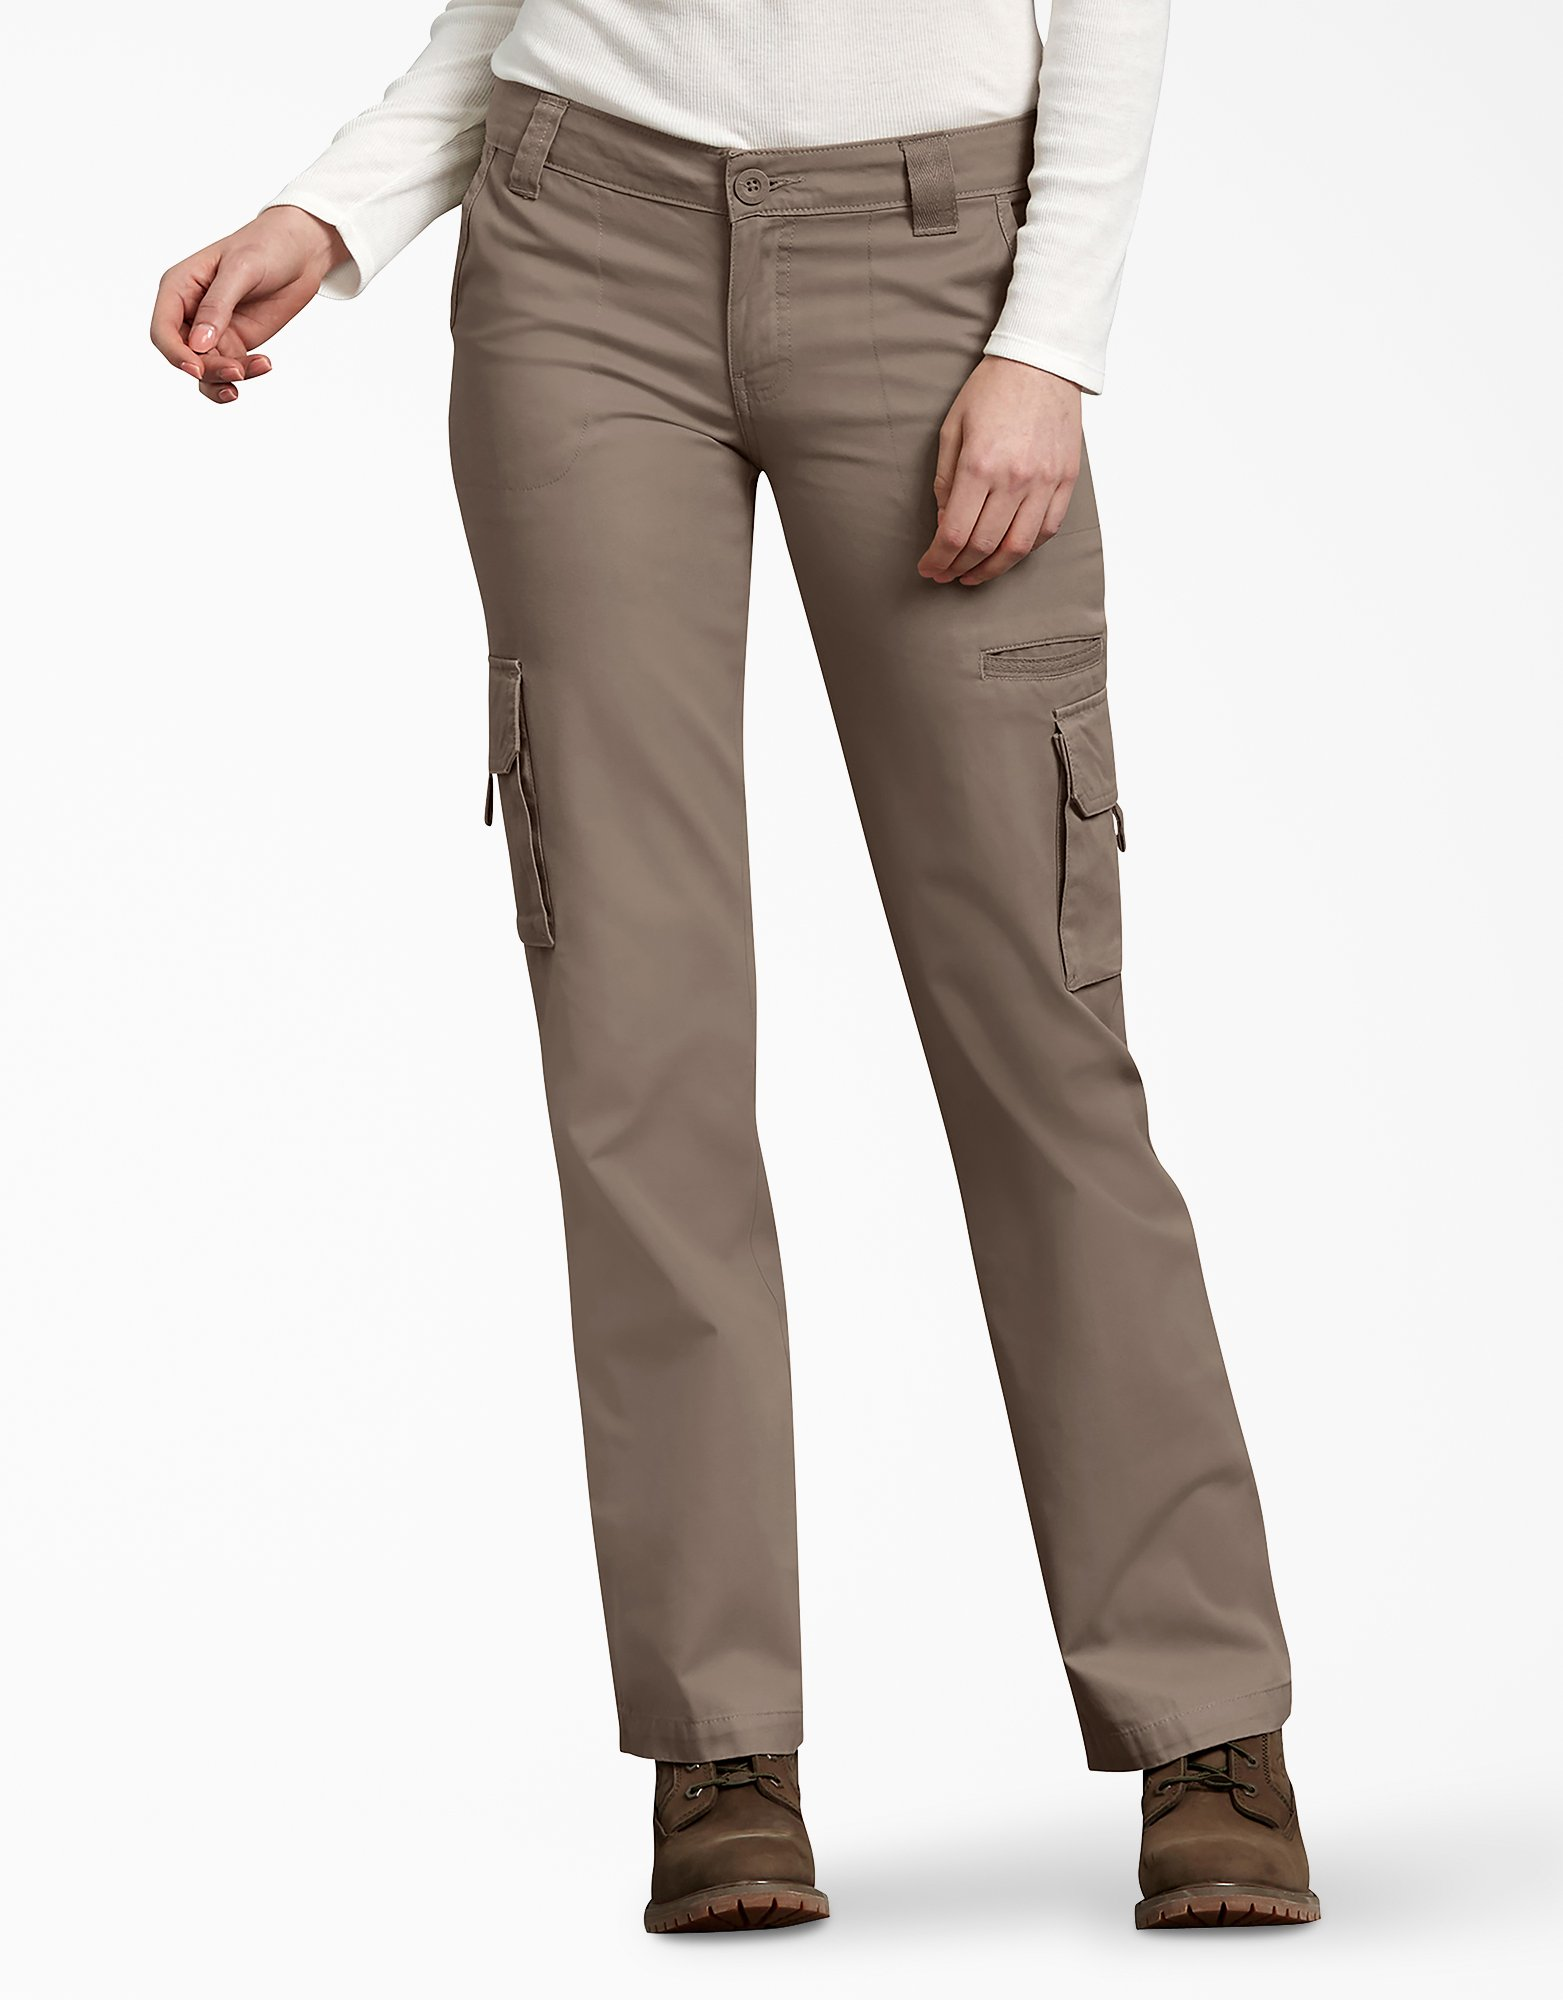 Women's Relaxed Cargo Pants - Pebble Brown (RNP)